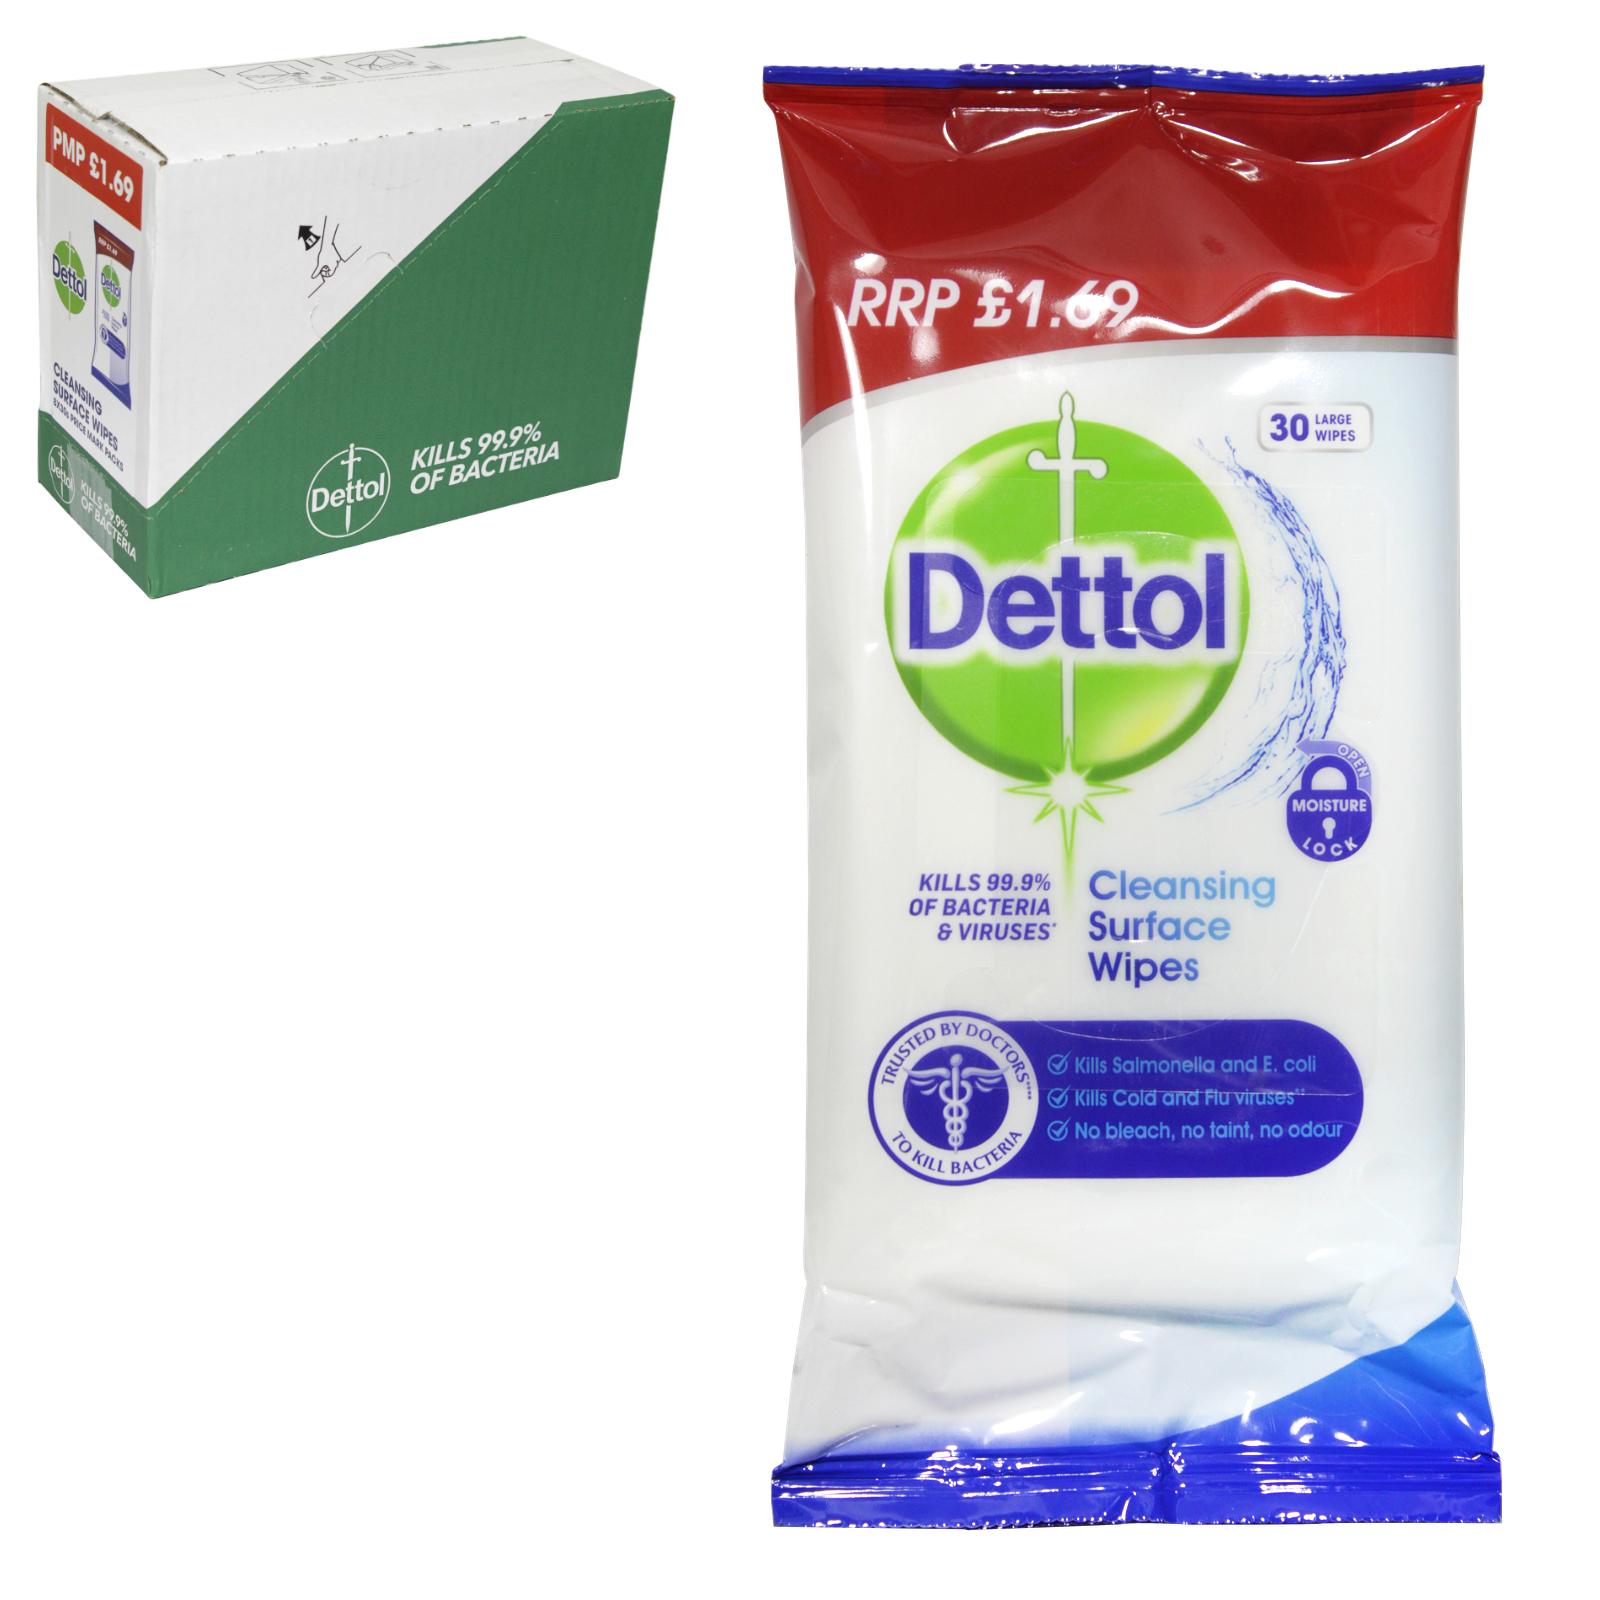 DETTOL SURFACE WIPES 36S PM?1.69  X8